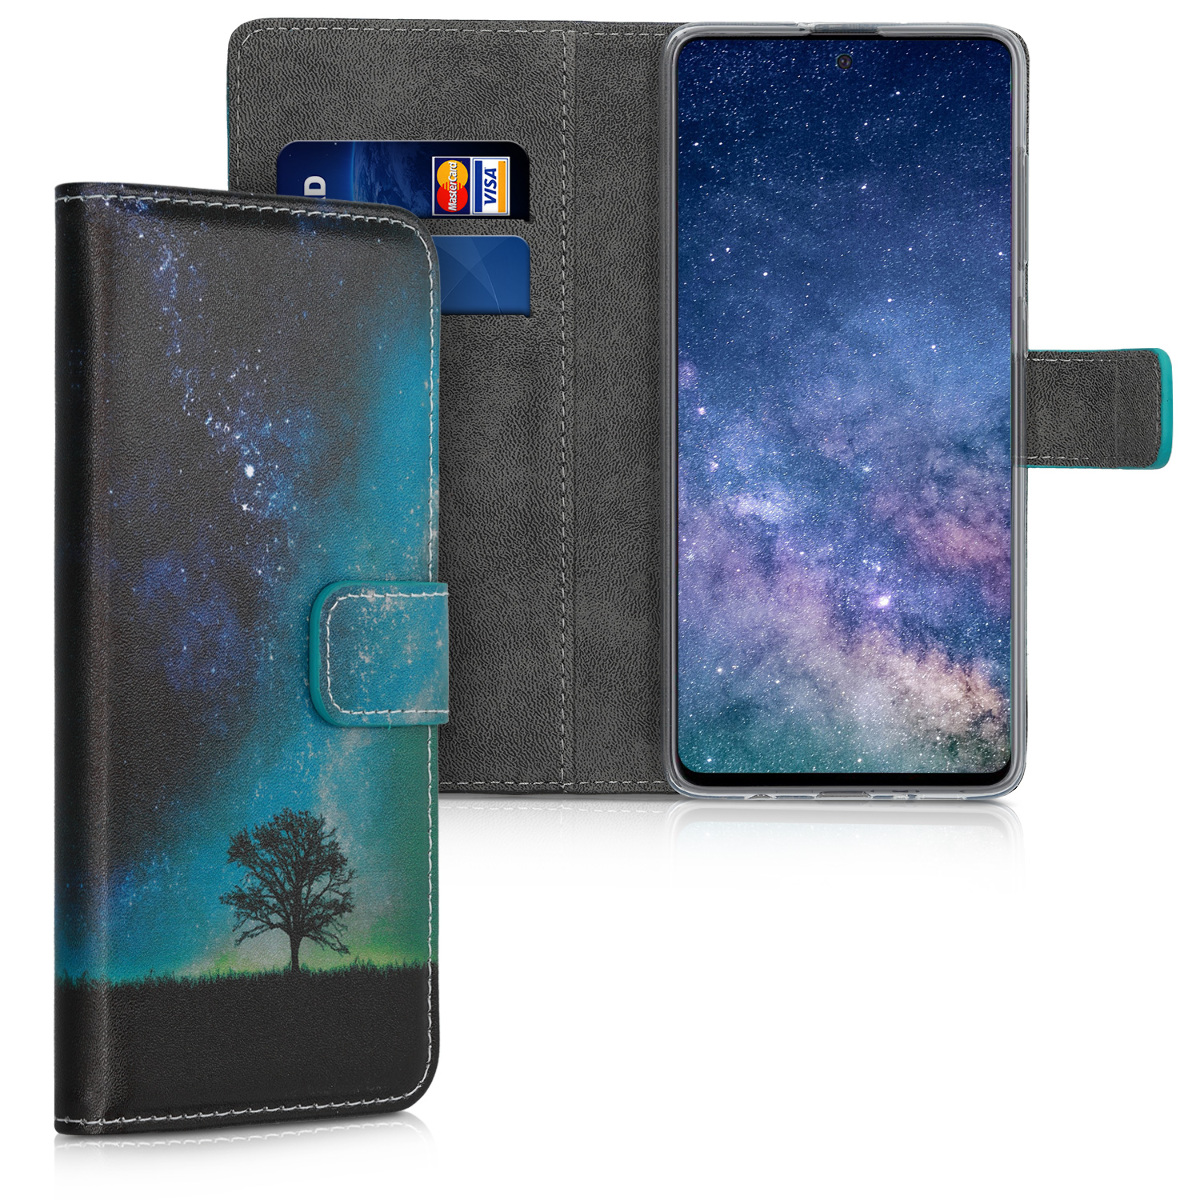 KW Θήκη - Πορτοφόλι Samsung Galaxy A71 - PU Leather Protective Flip Cover - Cosmic Nature - Blue / Grey / Black (51205.02)